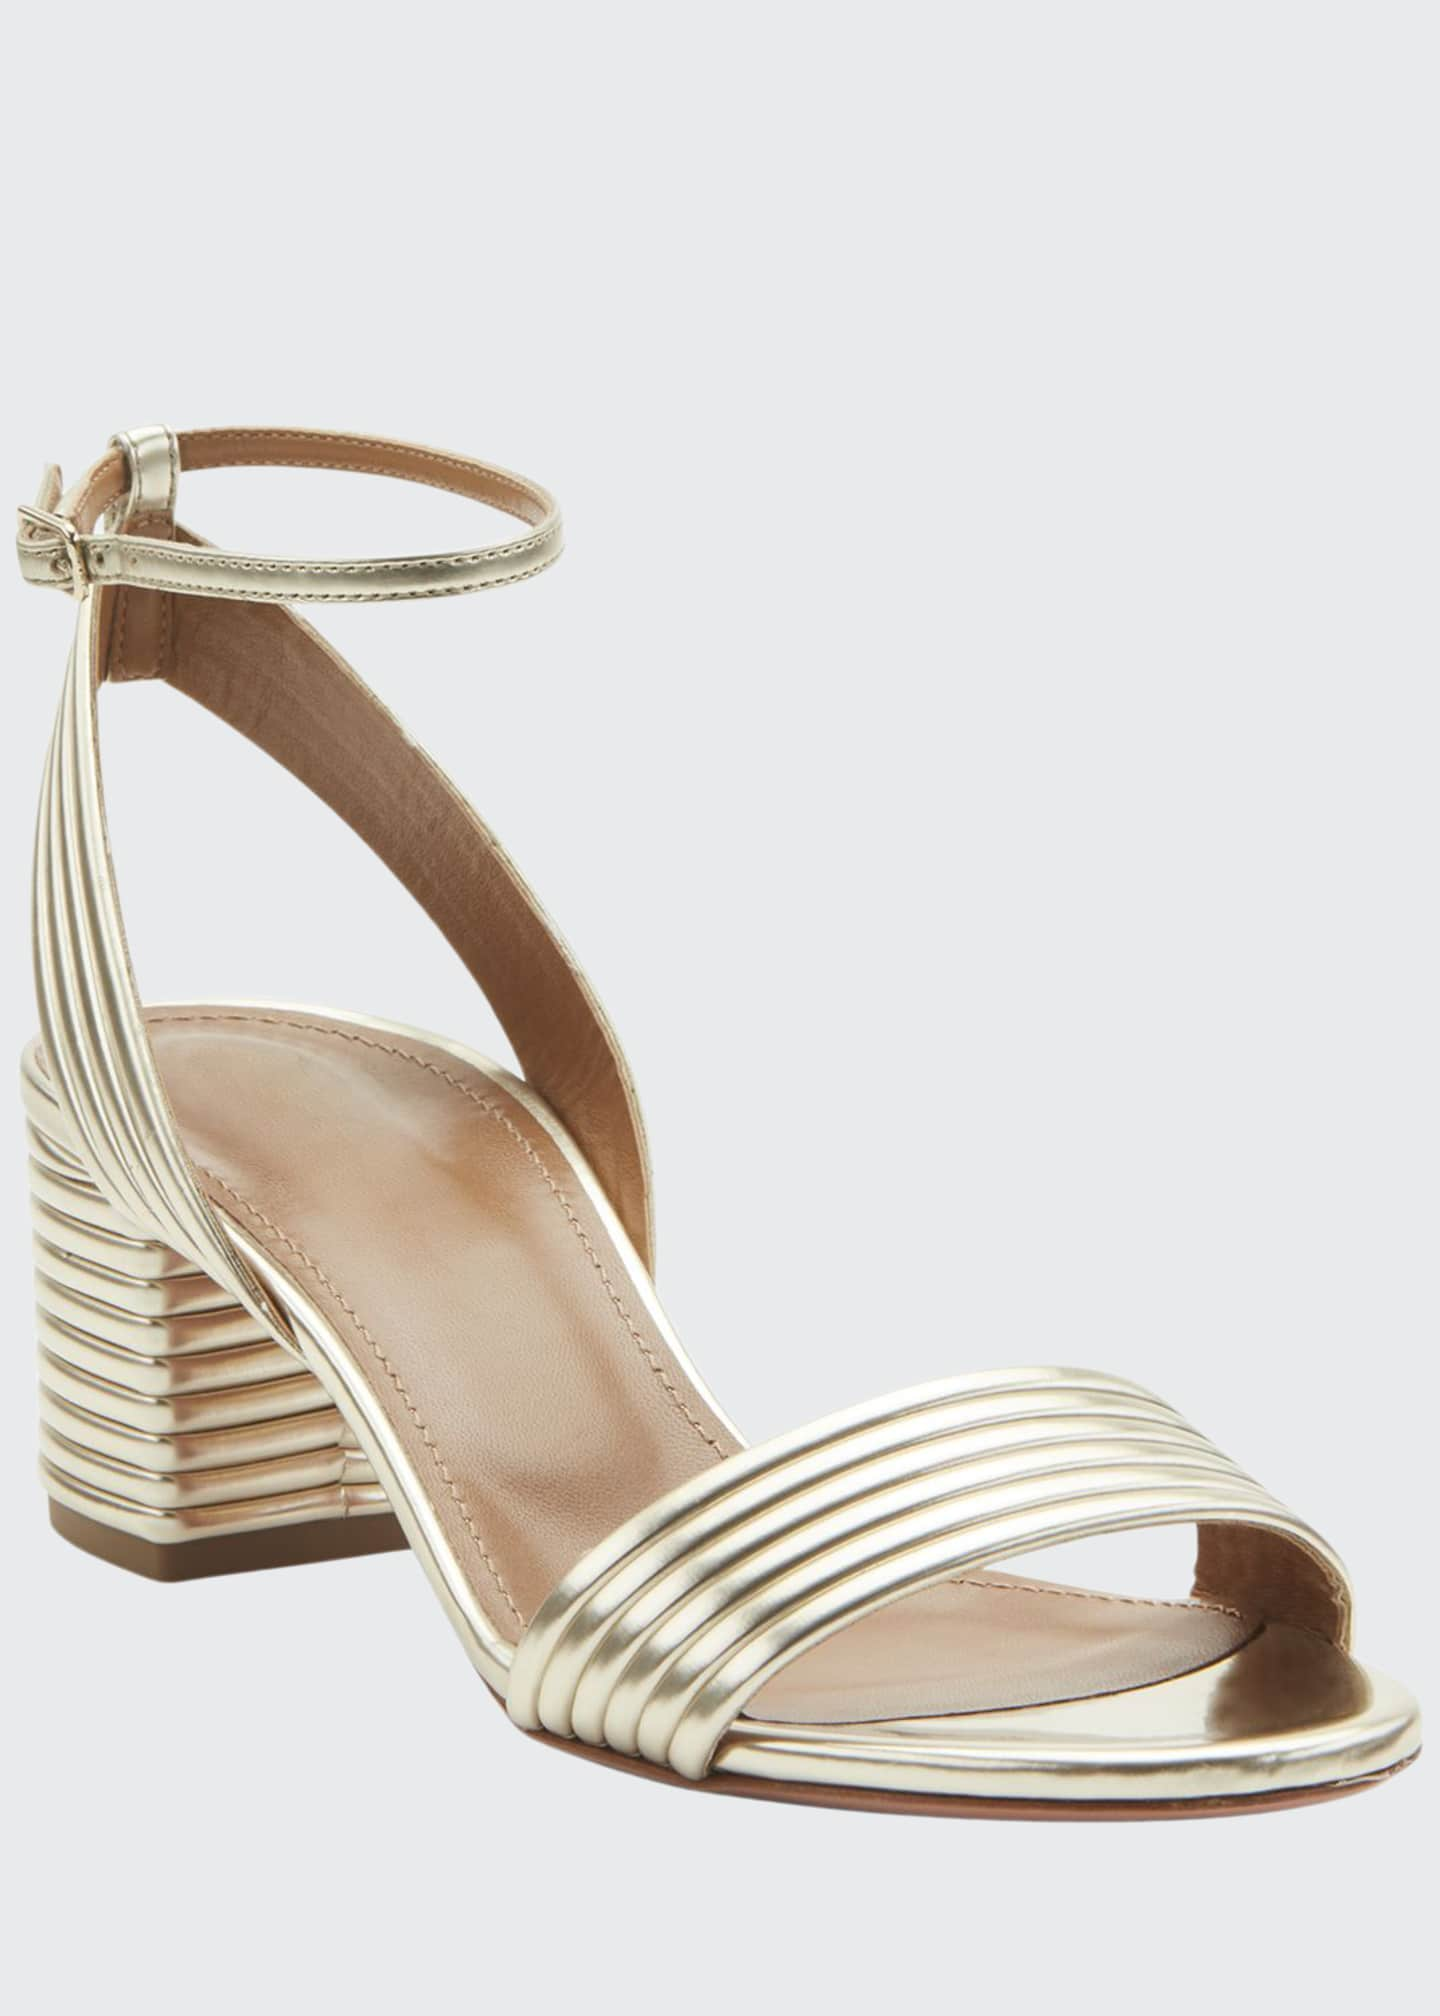 Aquazzura Sundance 50mm Metallic Leather Block-Heel Sandals